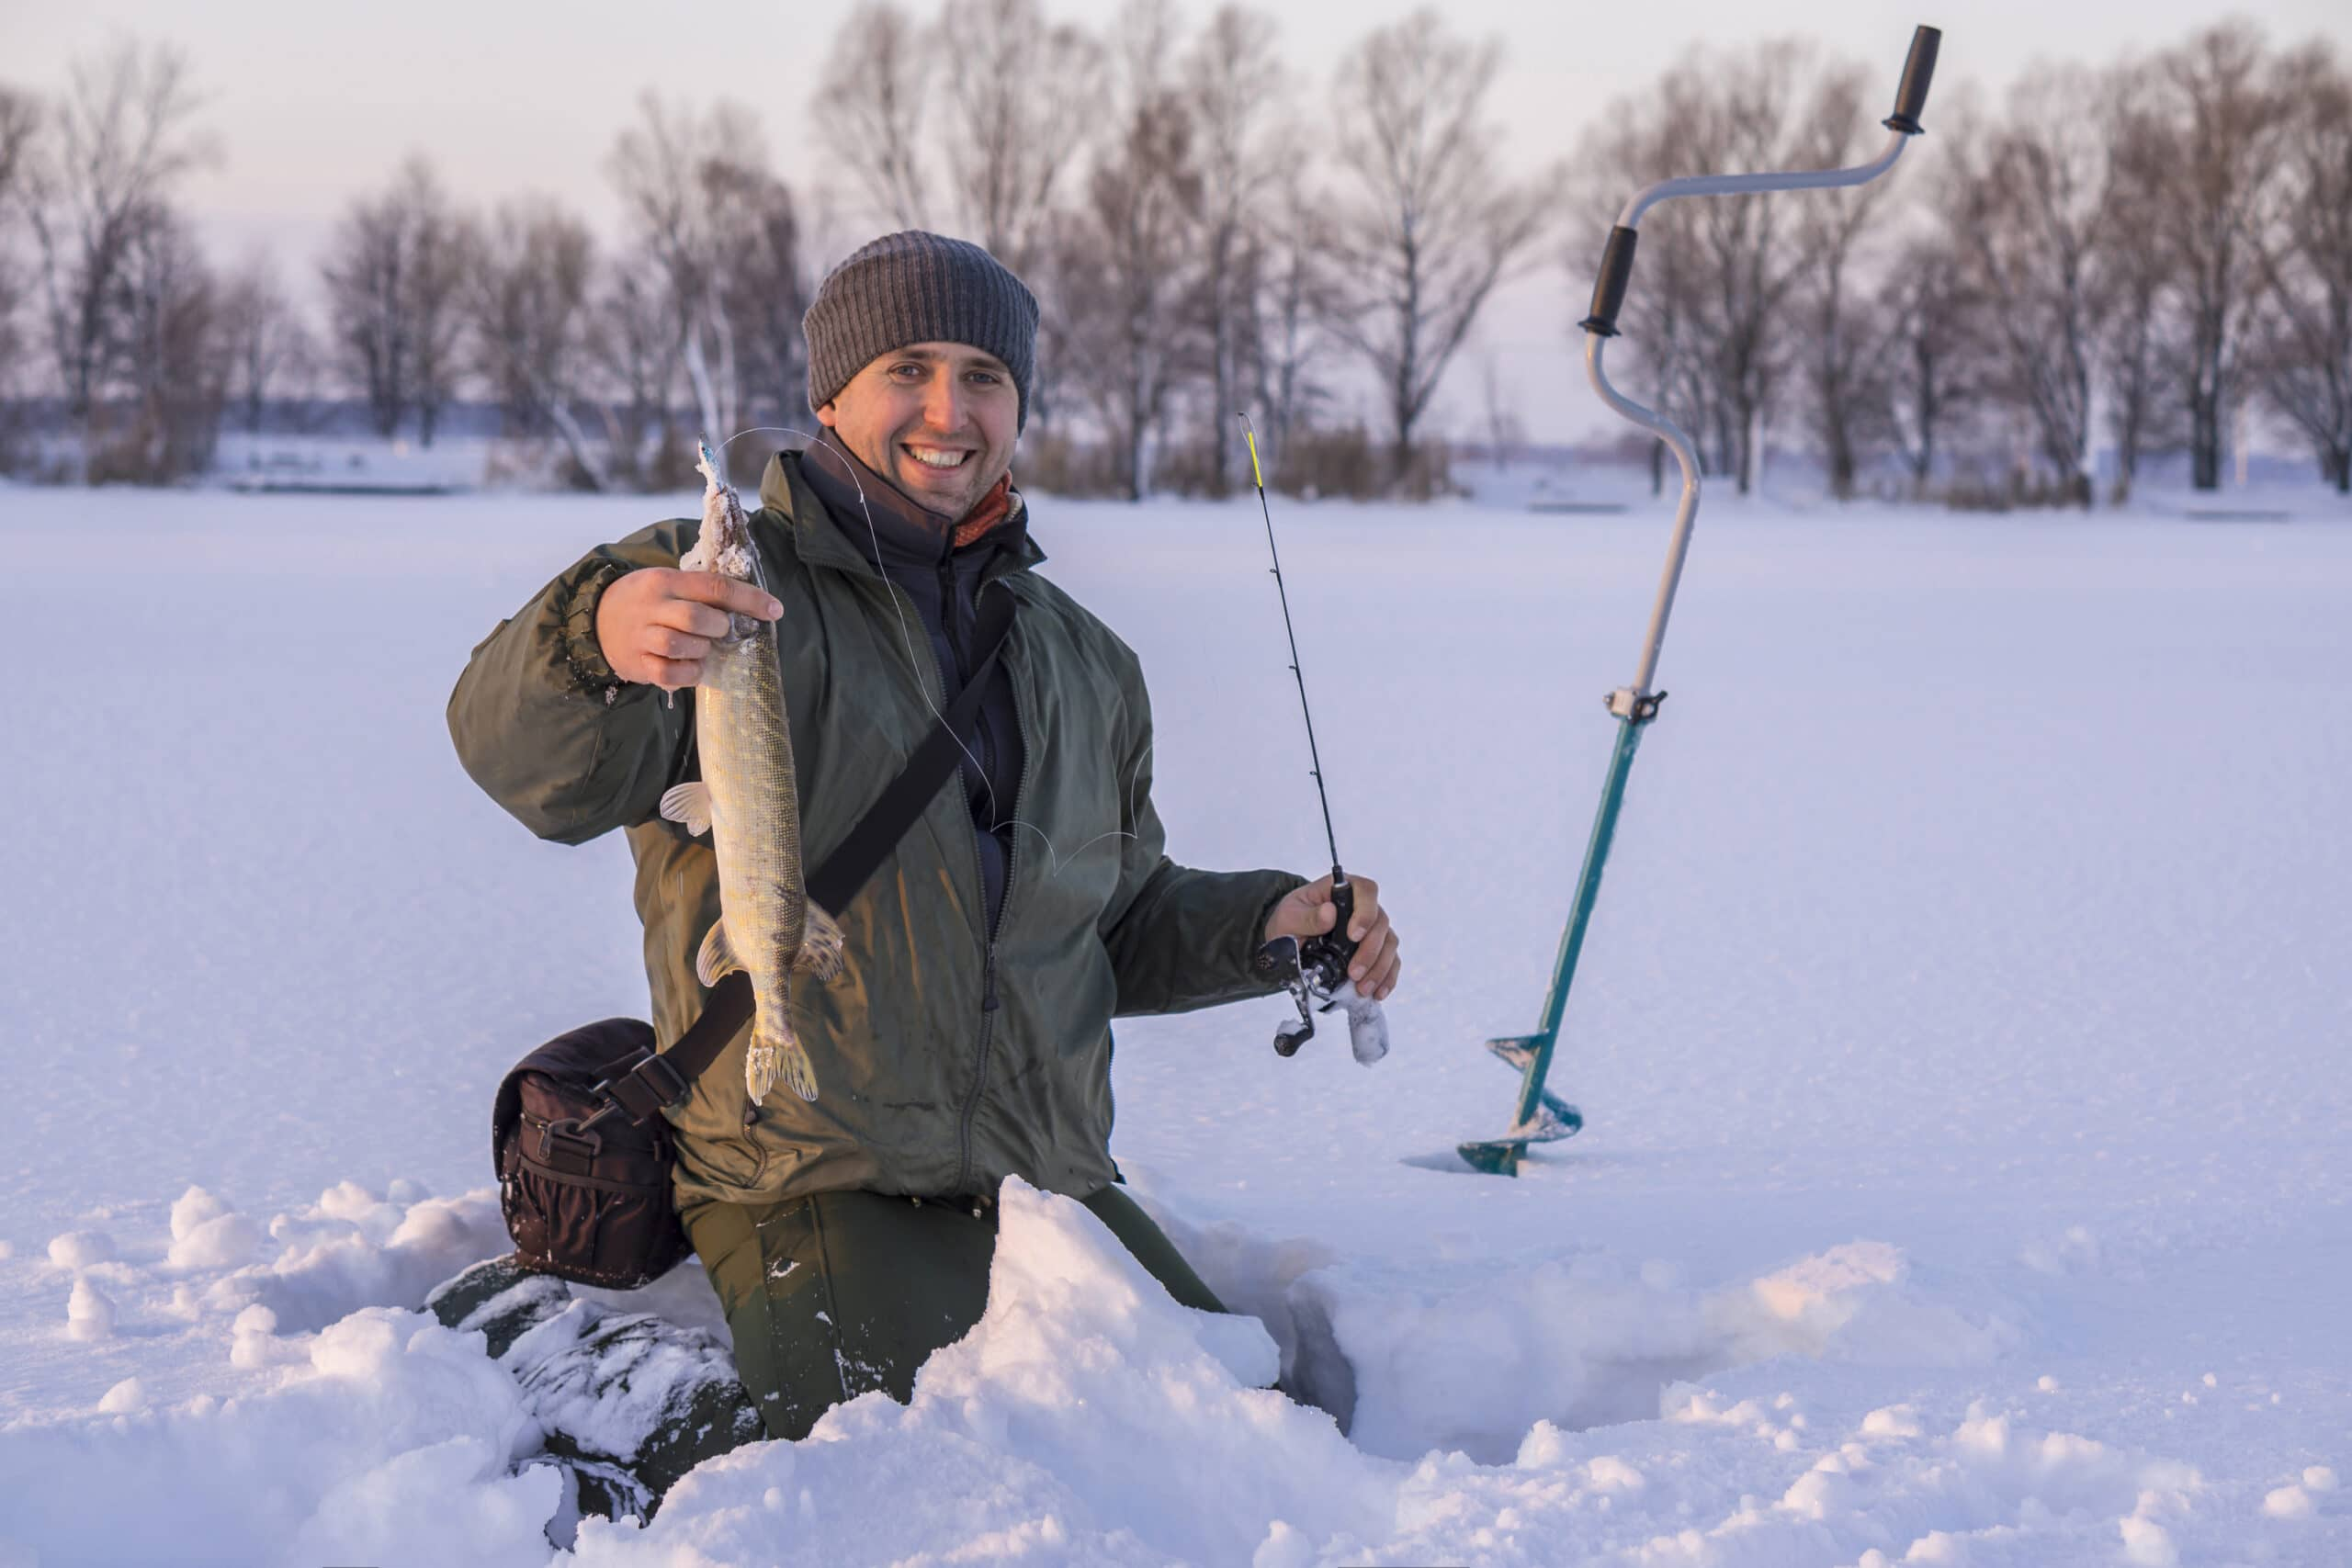 Winter fishing concept. Fisherman in action with trophy in hand. Catching pike fish from snowy ice at lake.